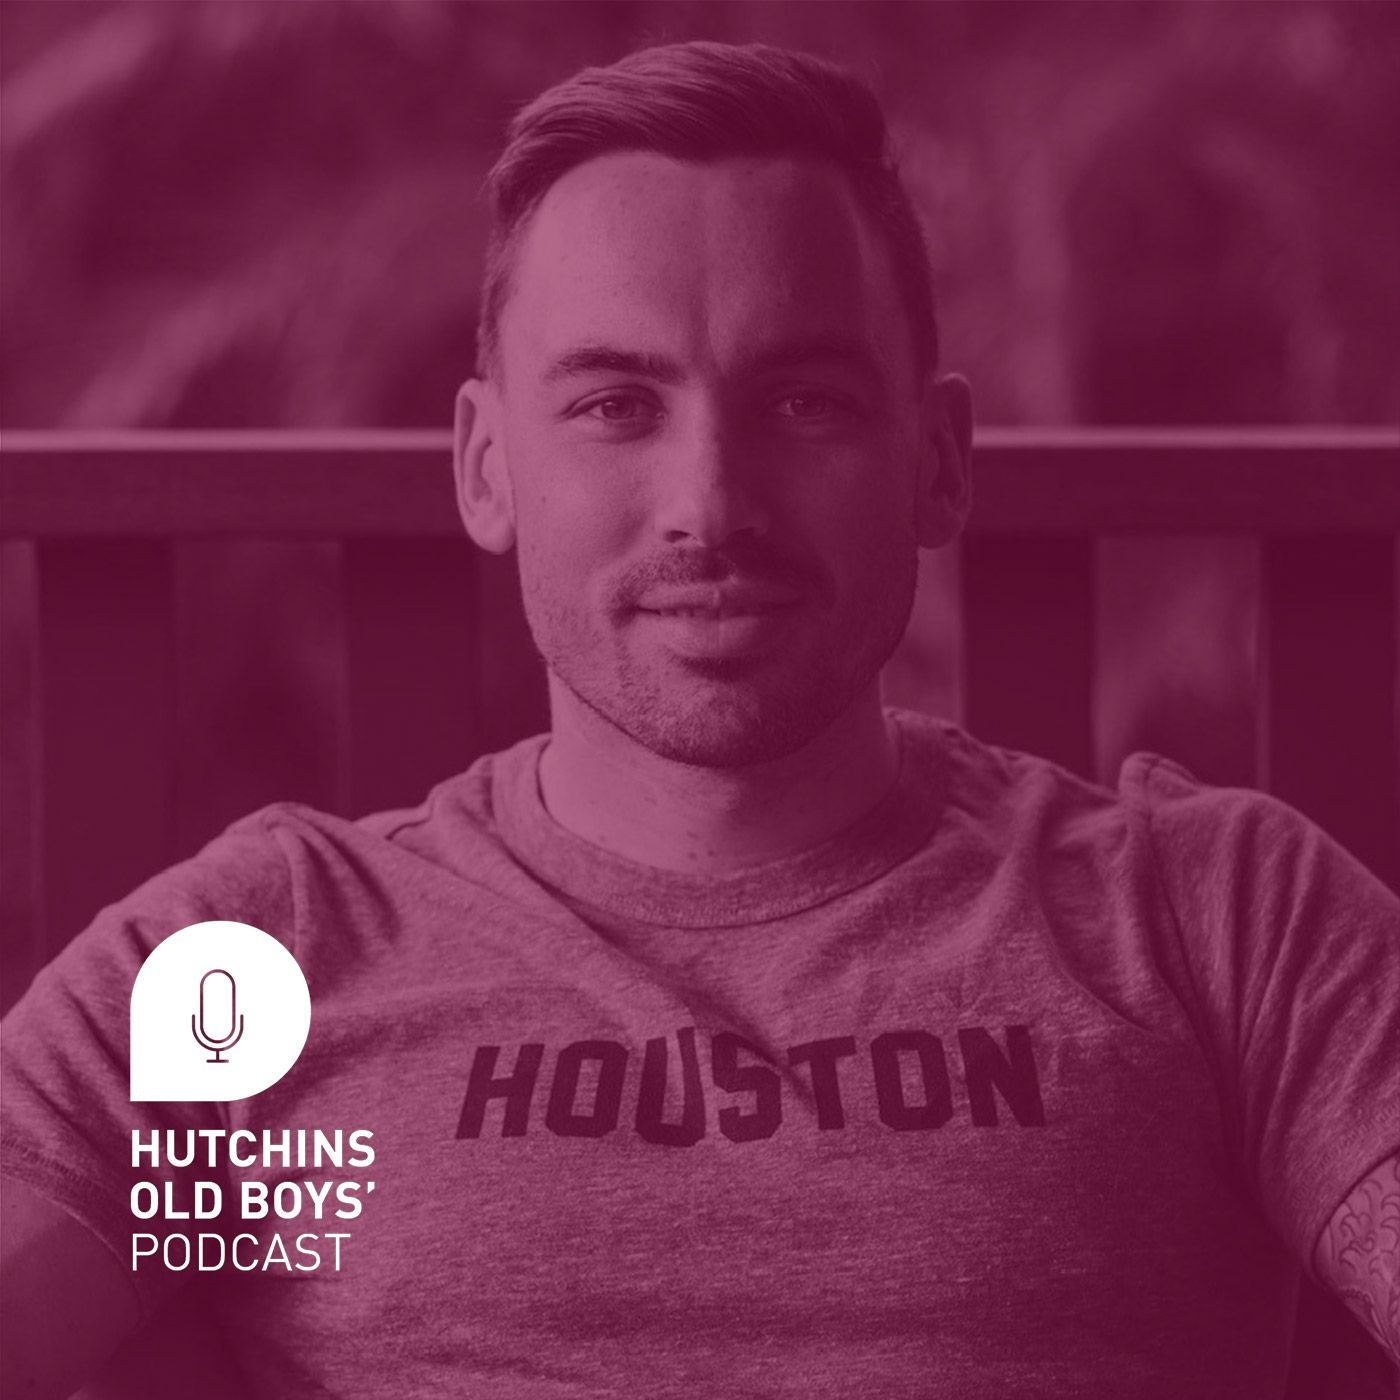 Hutchins Old Boys' Podcast – Ollie Geale ('12) chatting with Jesse O'Hara ('05)